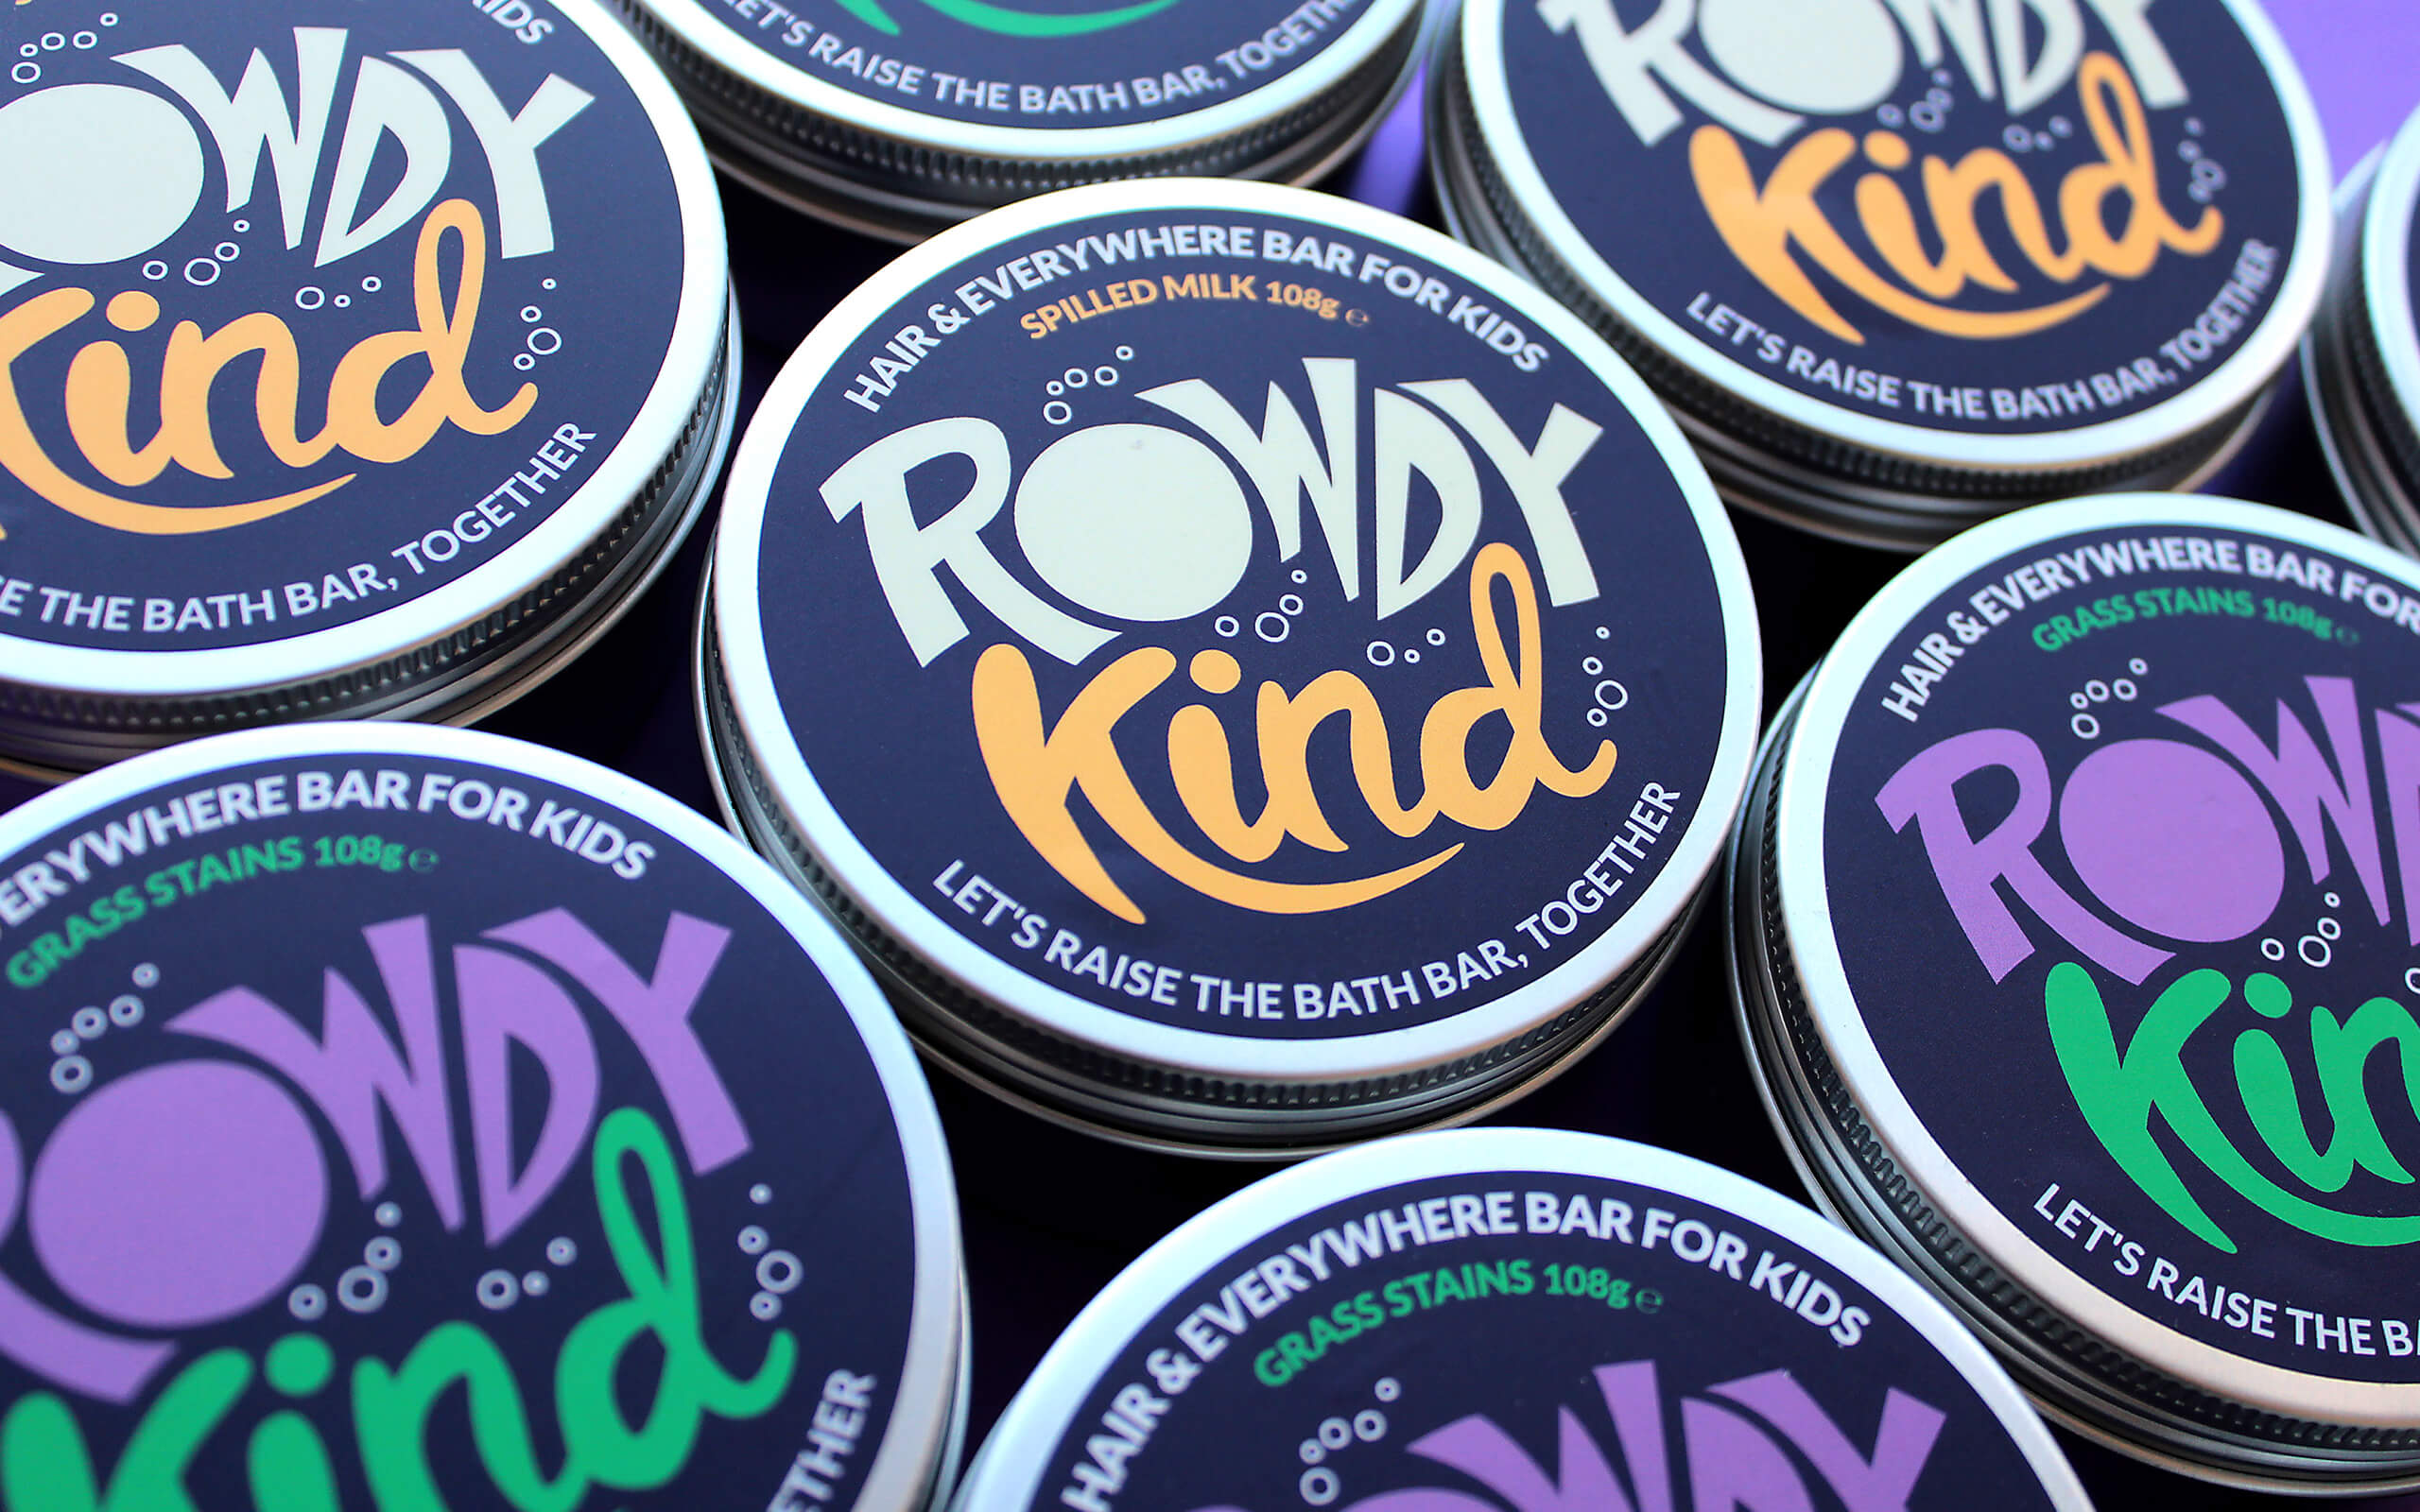 Taller Design Creates New Bath Bar Brand – Rowdy Kind